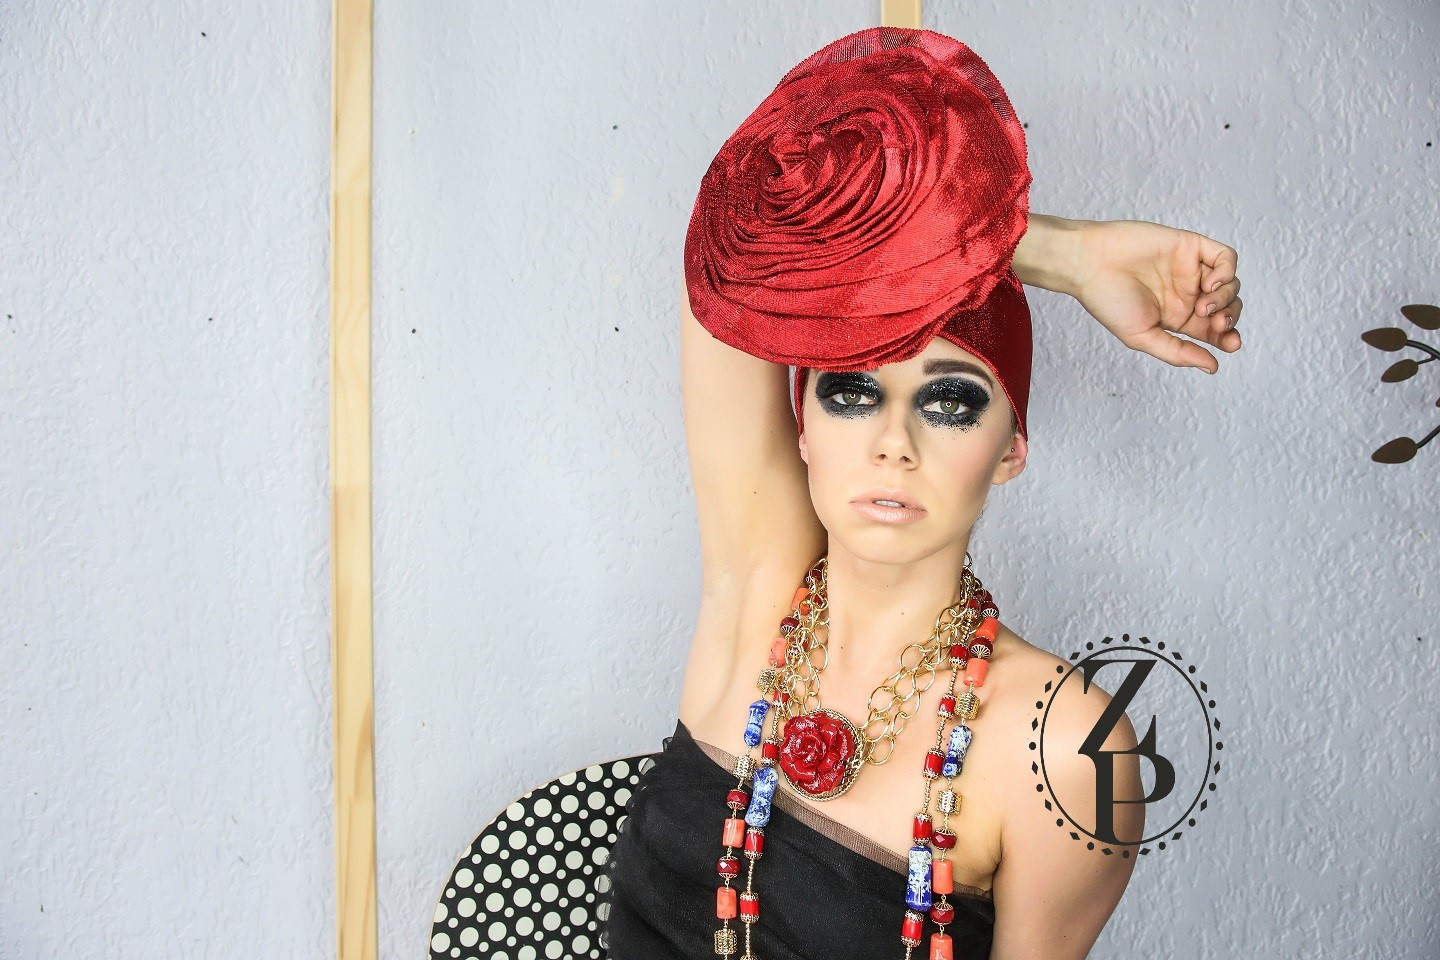 editorial-photo-shoot-bold-eye-makeup-nigerian-red-gele-and-coral-jewelry.jpg